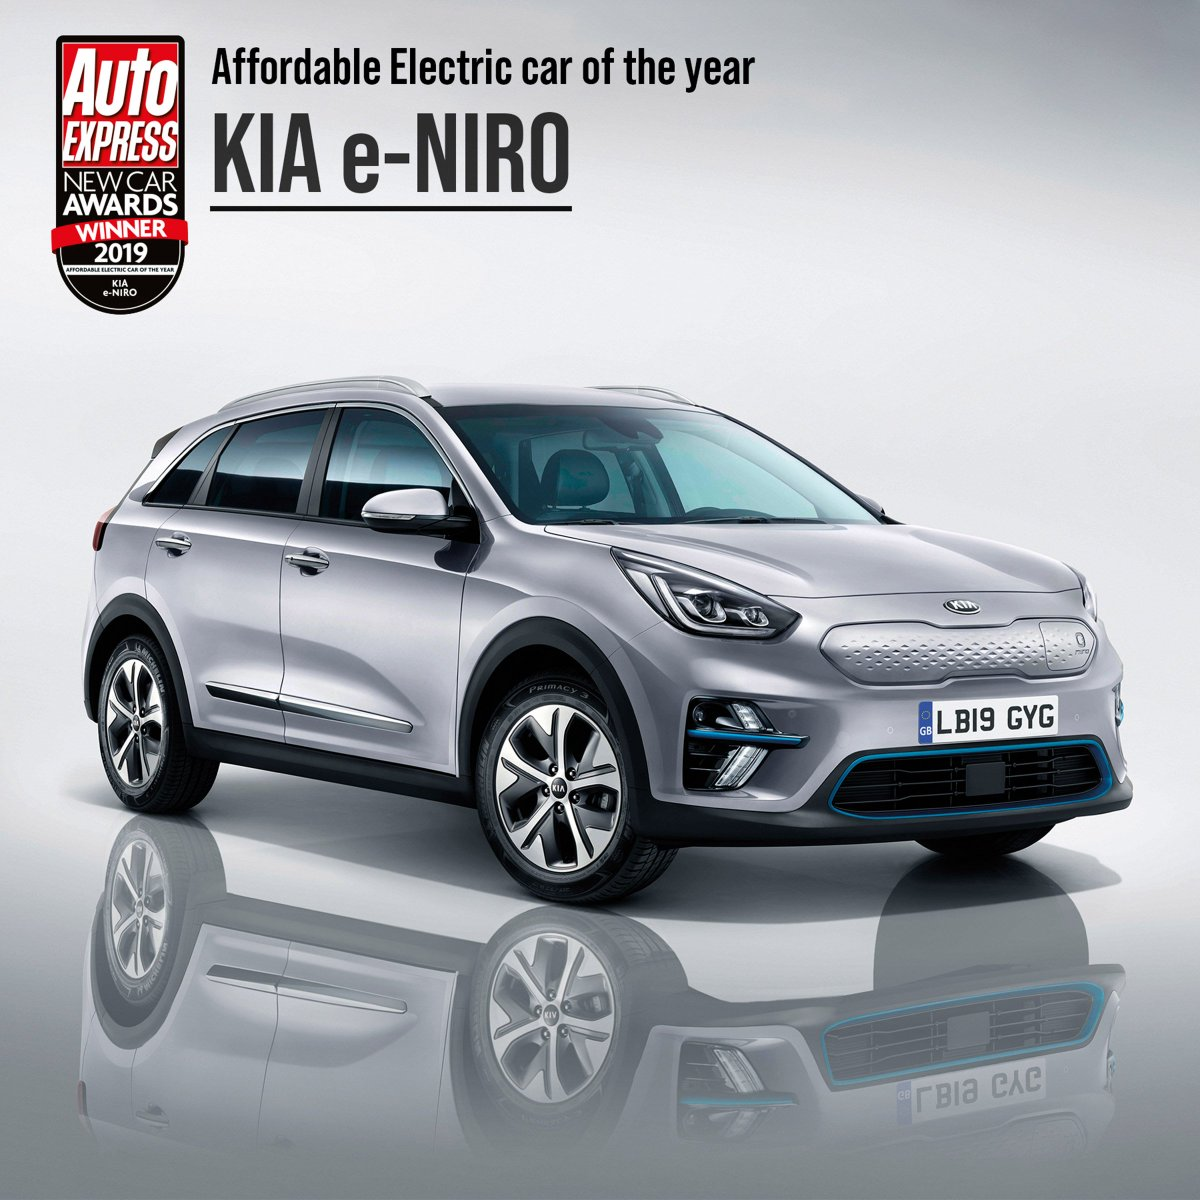 Auto Express Kia >> Auto Express On Twitter Our Affordable Electric Car Of The